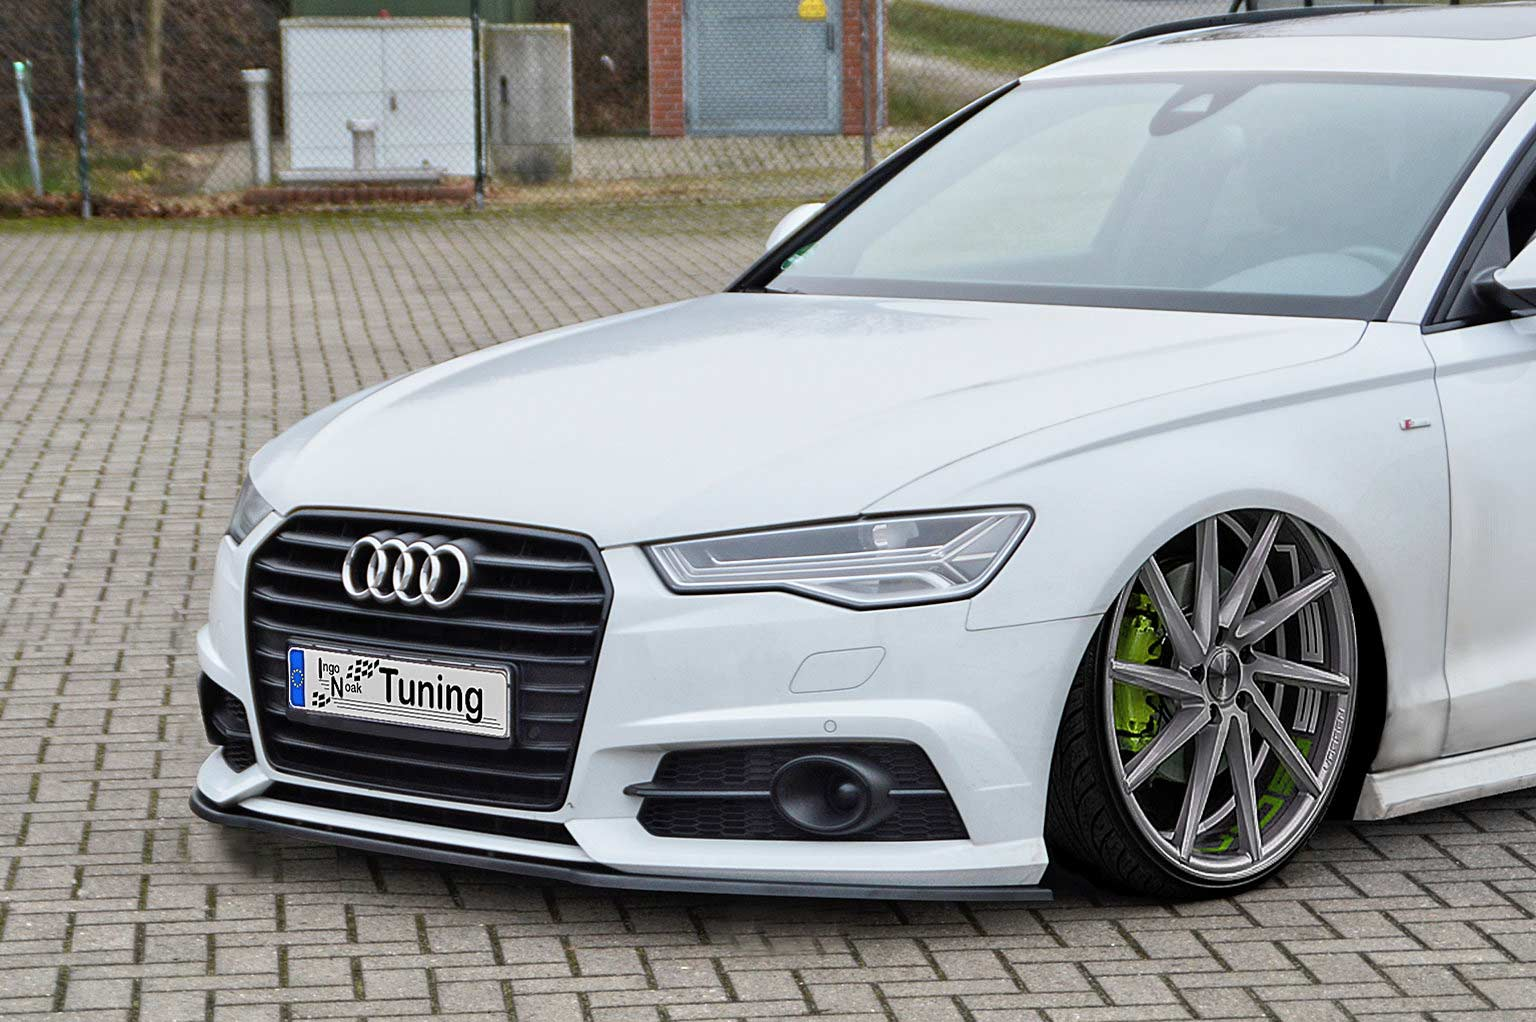 In Tuning Cupspoilerlip Glossy For Audi A6 C7 Typ 4g Facelift S Line